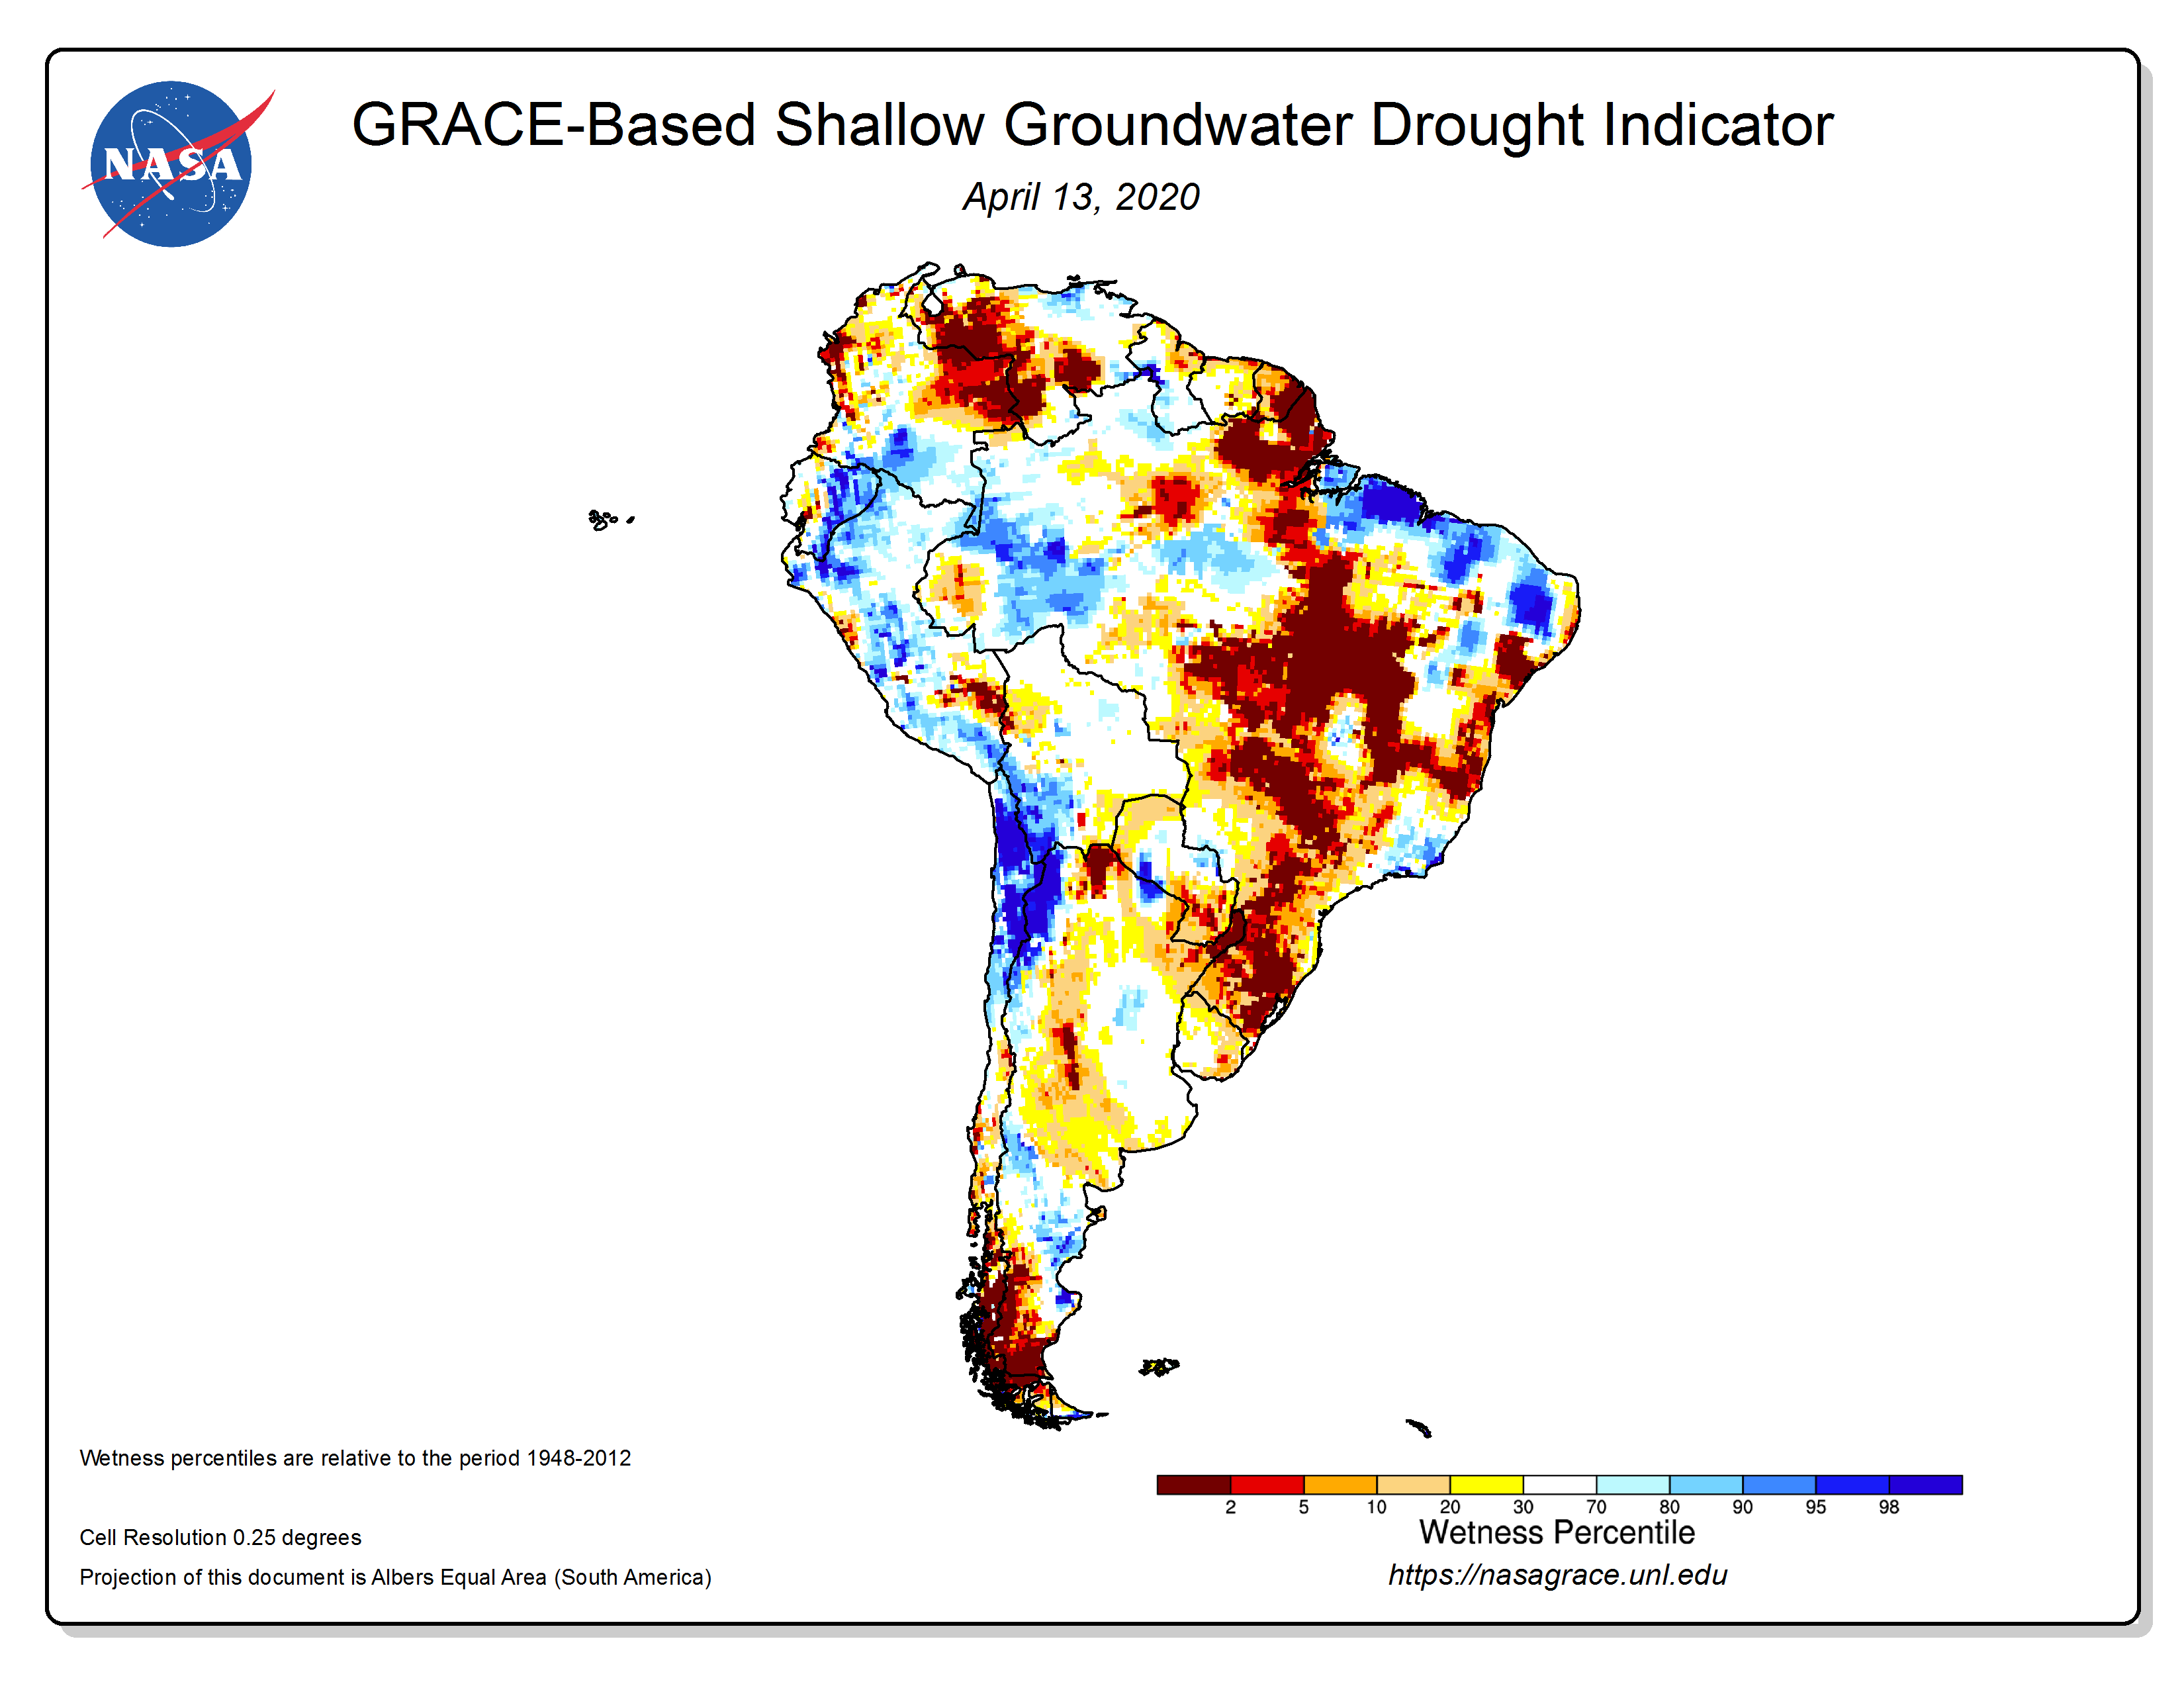 Groundwater data is used to help predict droughts globally. Image courtesy by NASA and the United States National Drought Mitigation Center